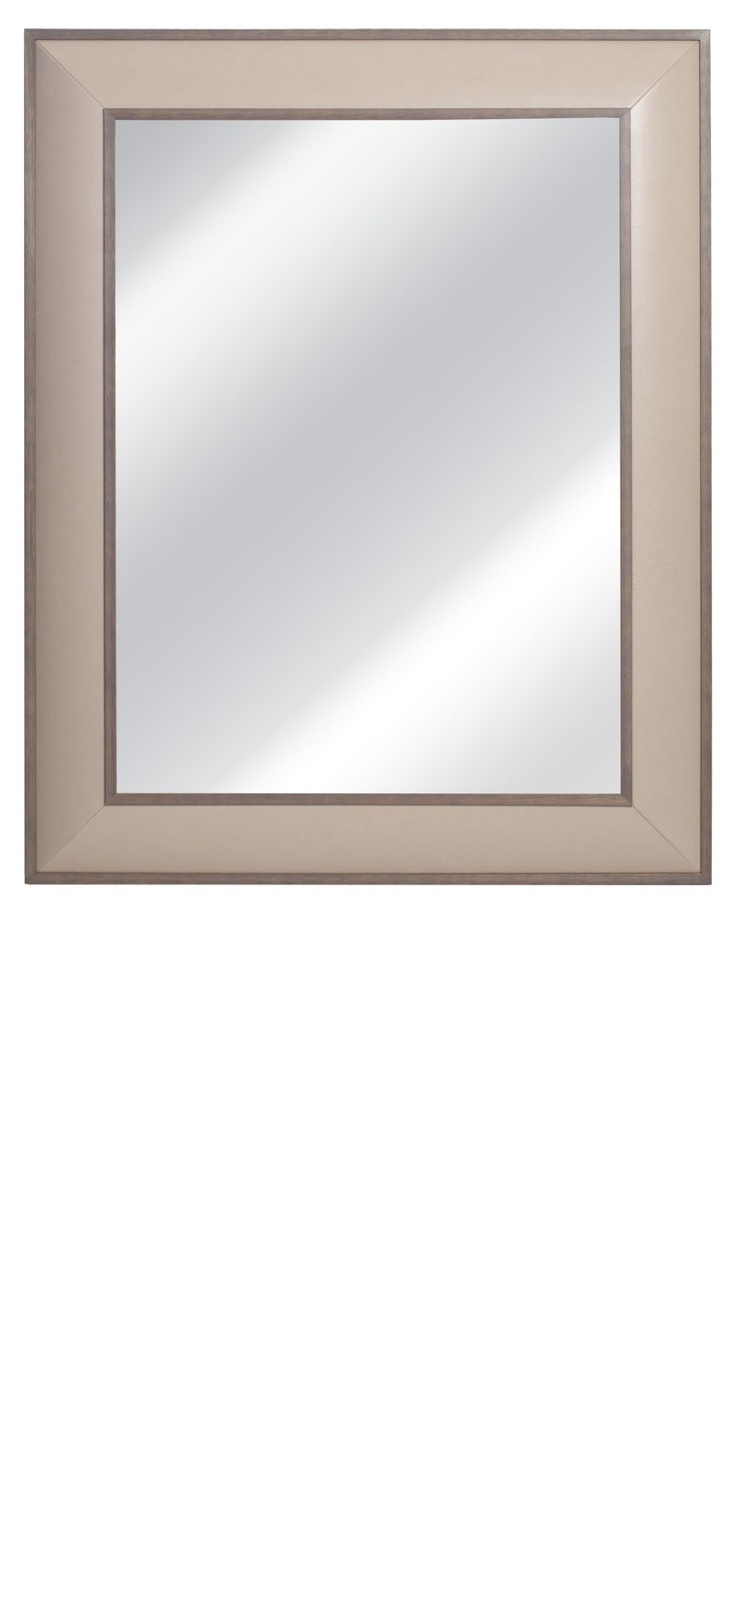 15 Best Images About Leather Wall Mirrors On Pinterest Mirror For Leather Wall Mirrors (Image 1 of 15)